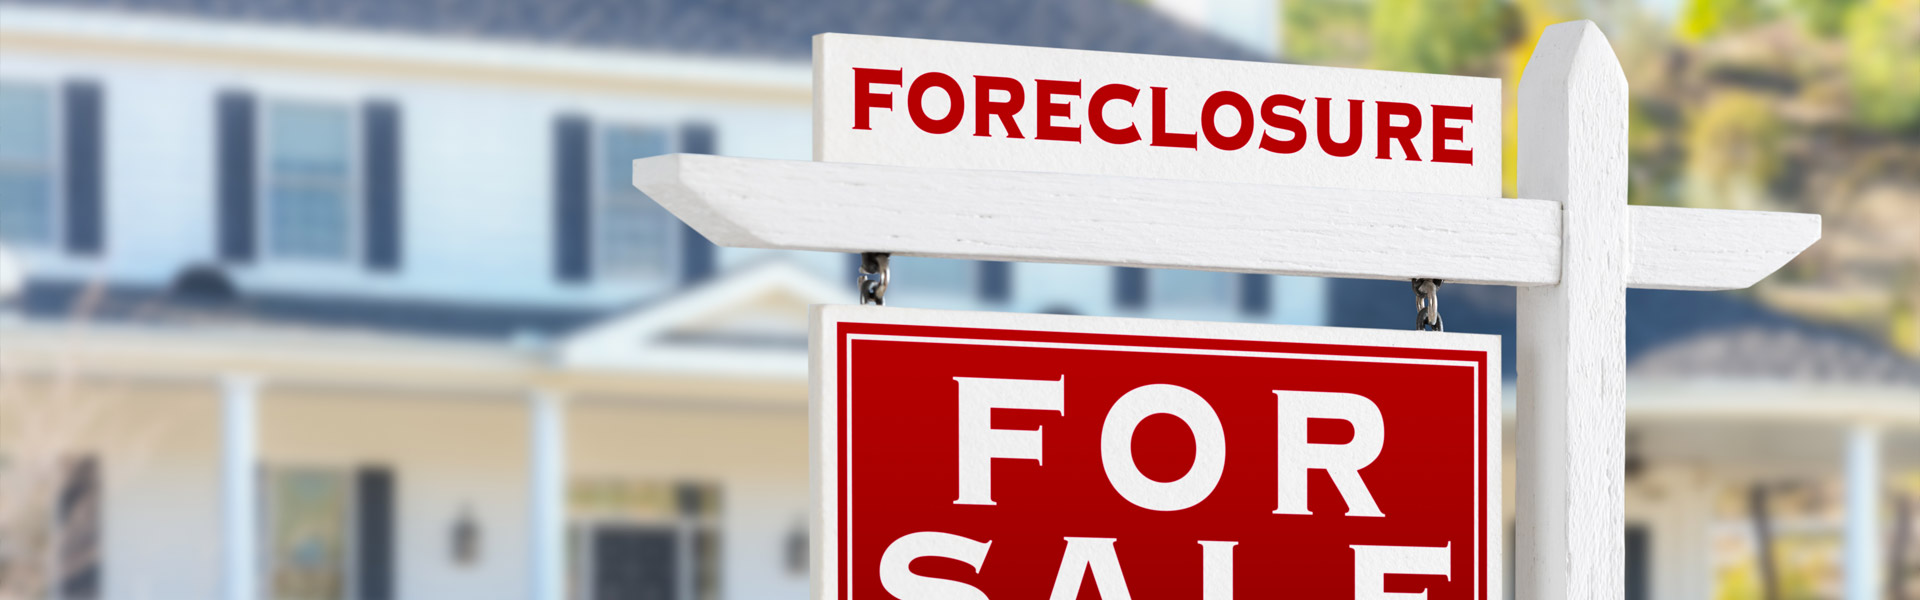 Central Florida Foreclosure Defense Attorneys